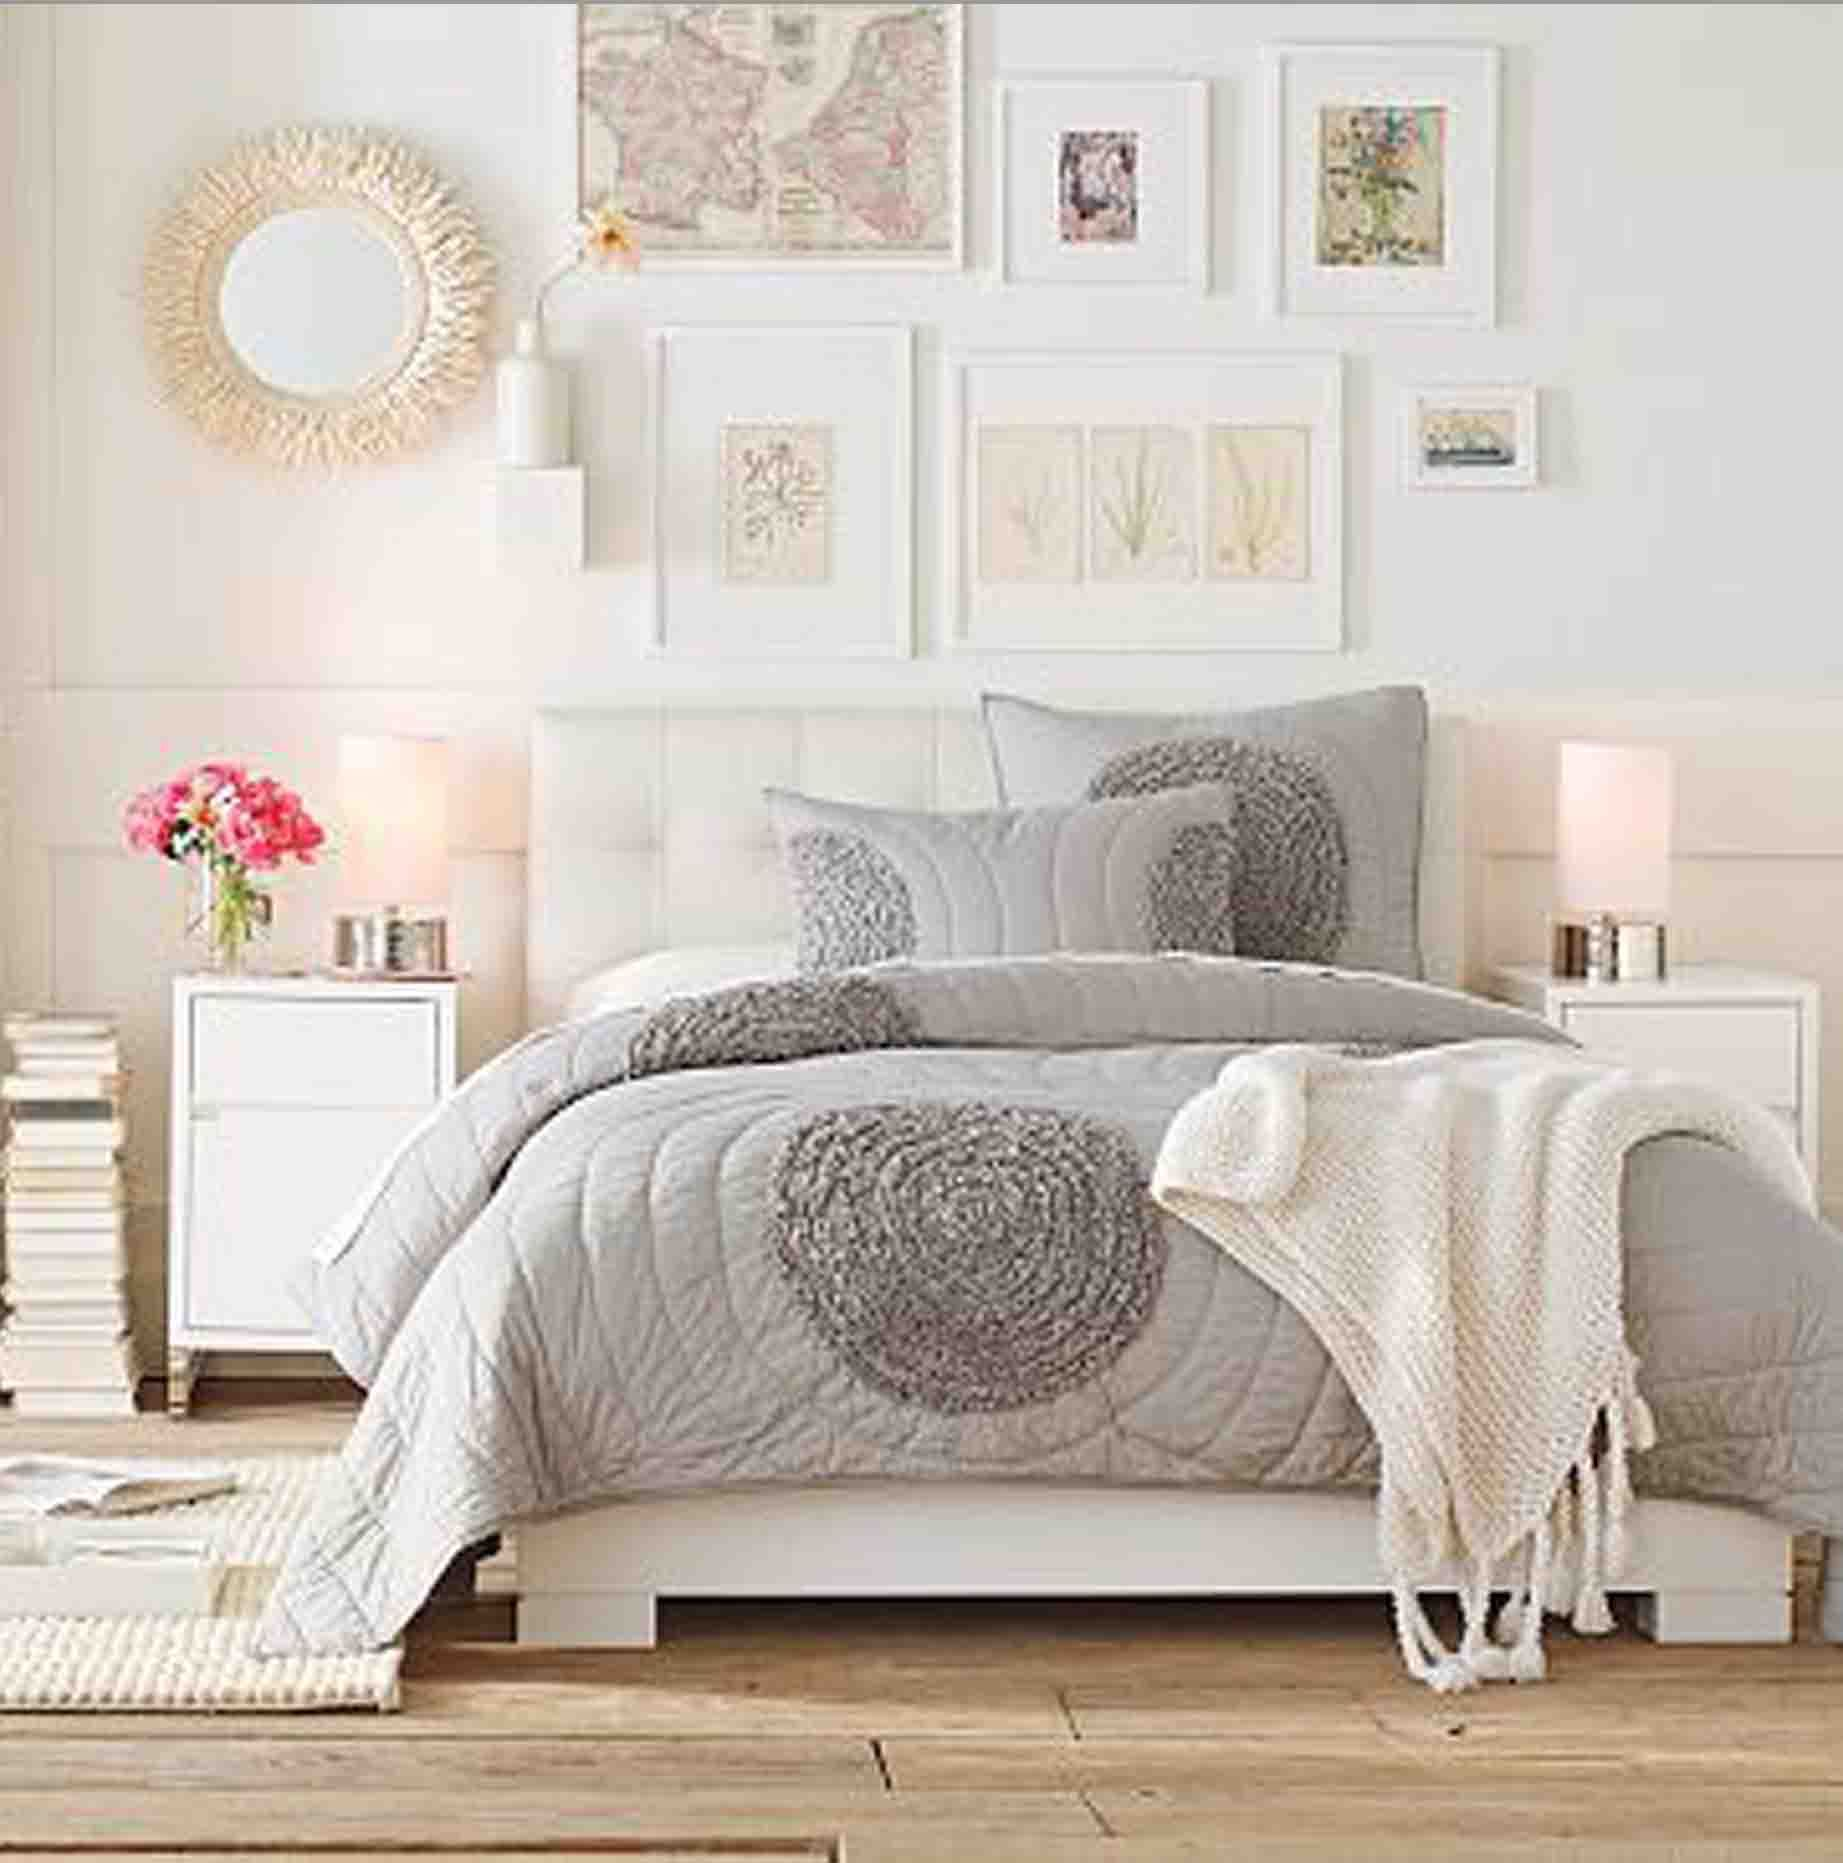 Light Grey Bedroom Ideas: Light And Bright Bedroom Ideas. Grey, Nutral, White